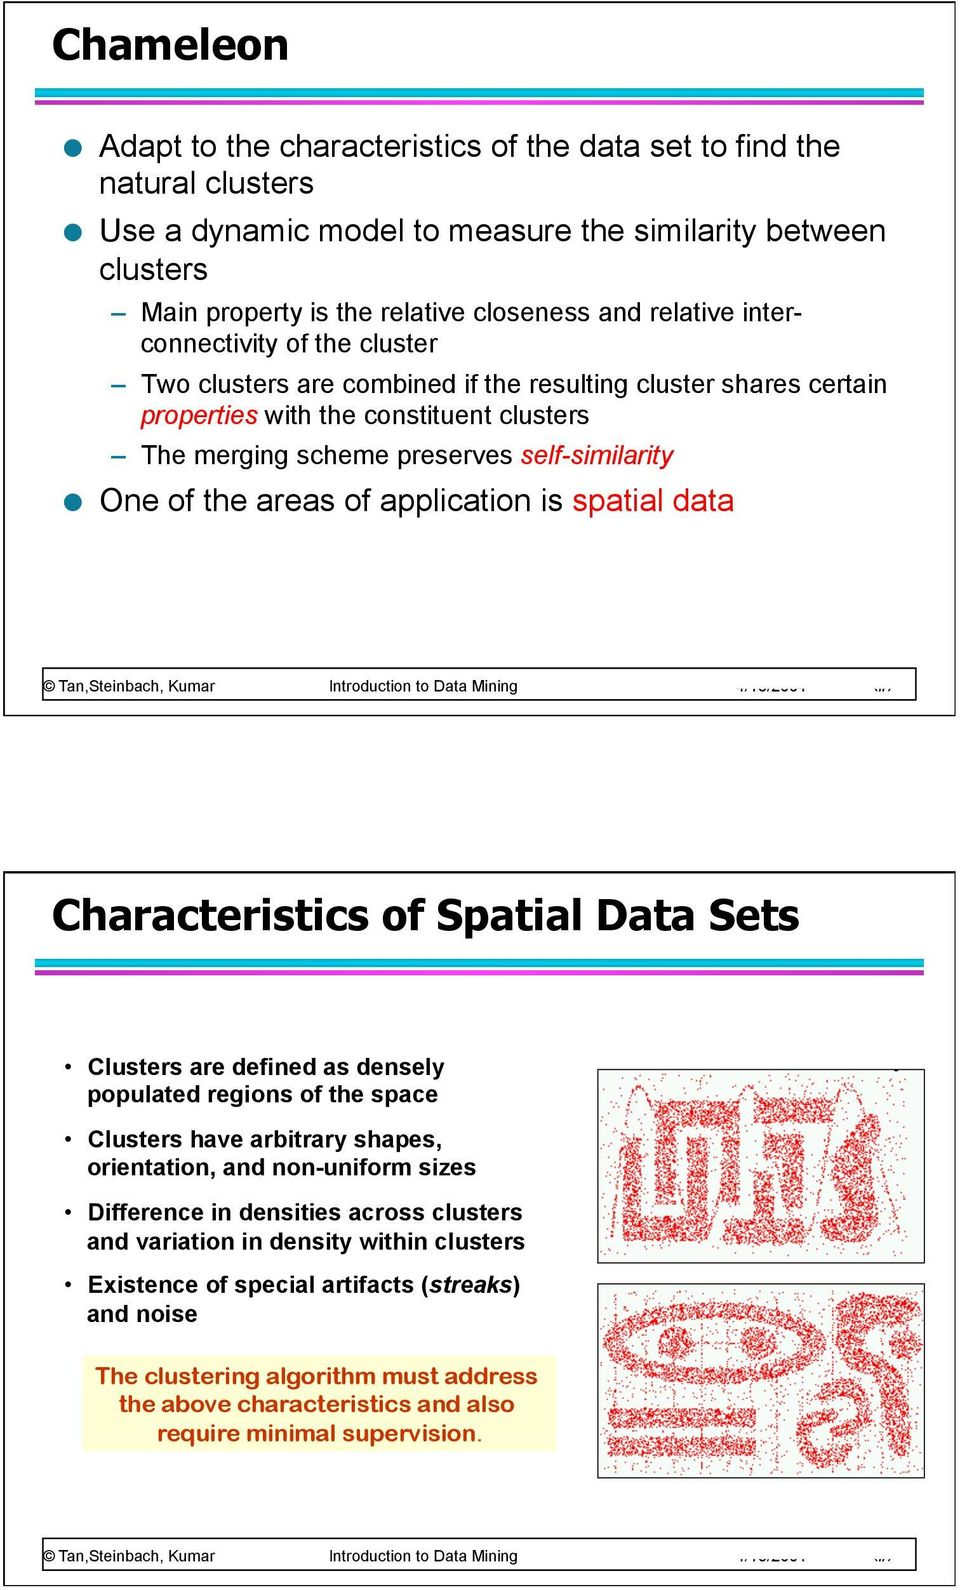 areas of application is spatial data Characteristics of Spatial Data Sets Clusters are defined as densely populated regions of the space Clusters have arbitrary shapes, orientation, and non-uniform